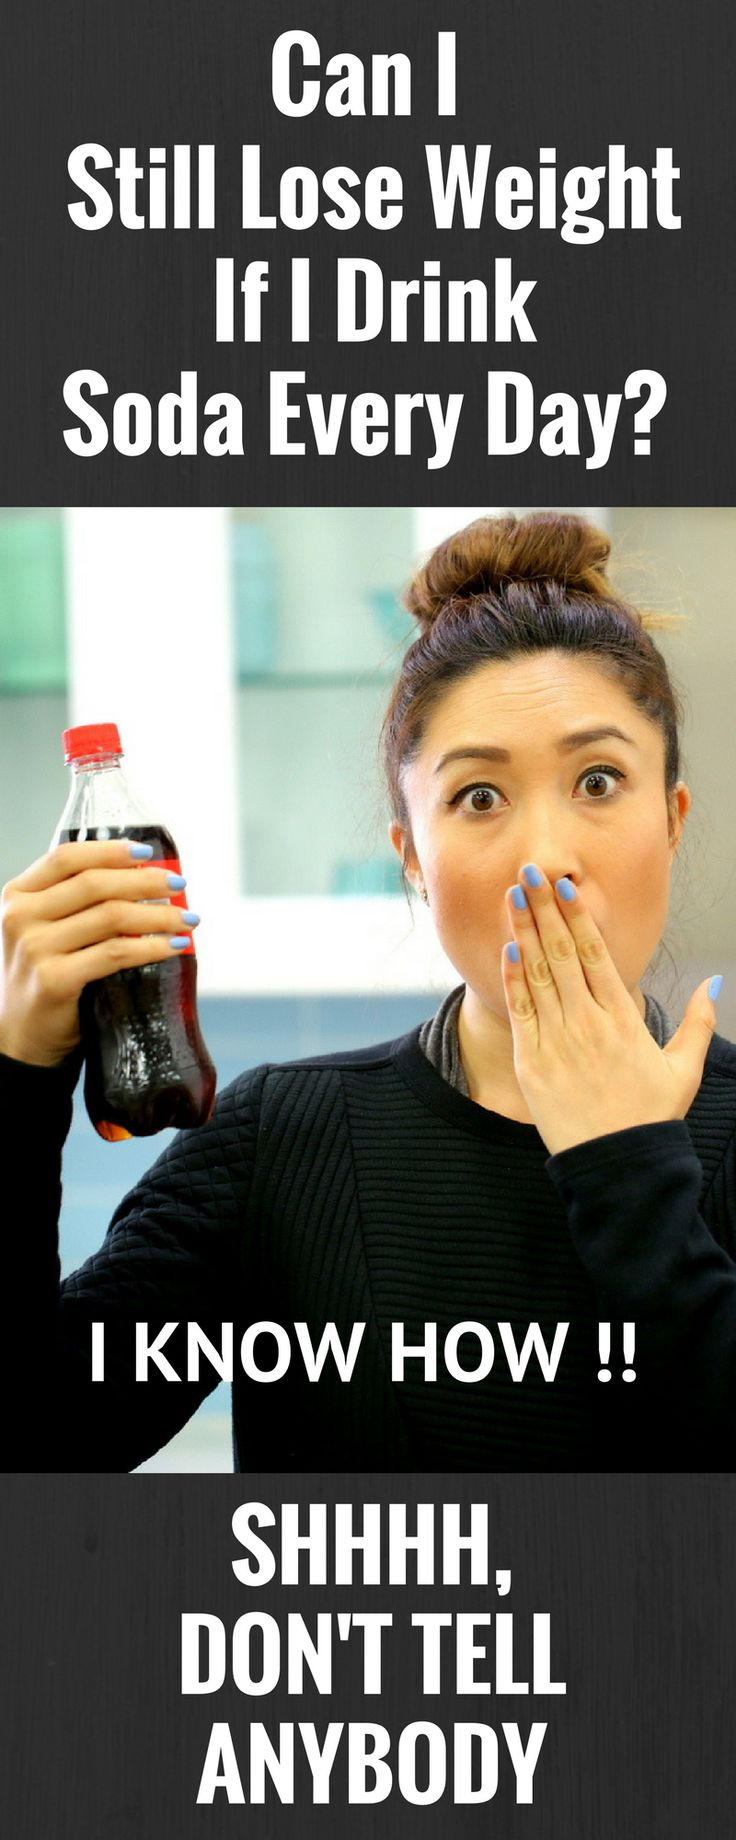 The Secret to Drinking Soda and Staying Skinny Is ... http://wp.me/p8Hrfc-55